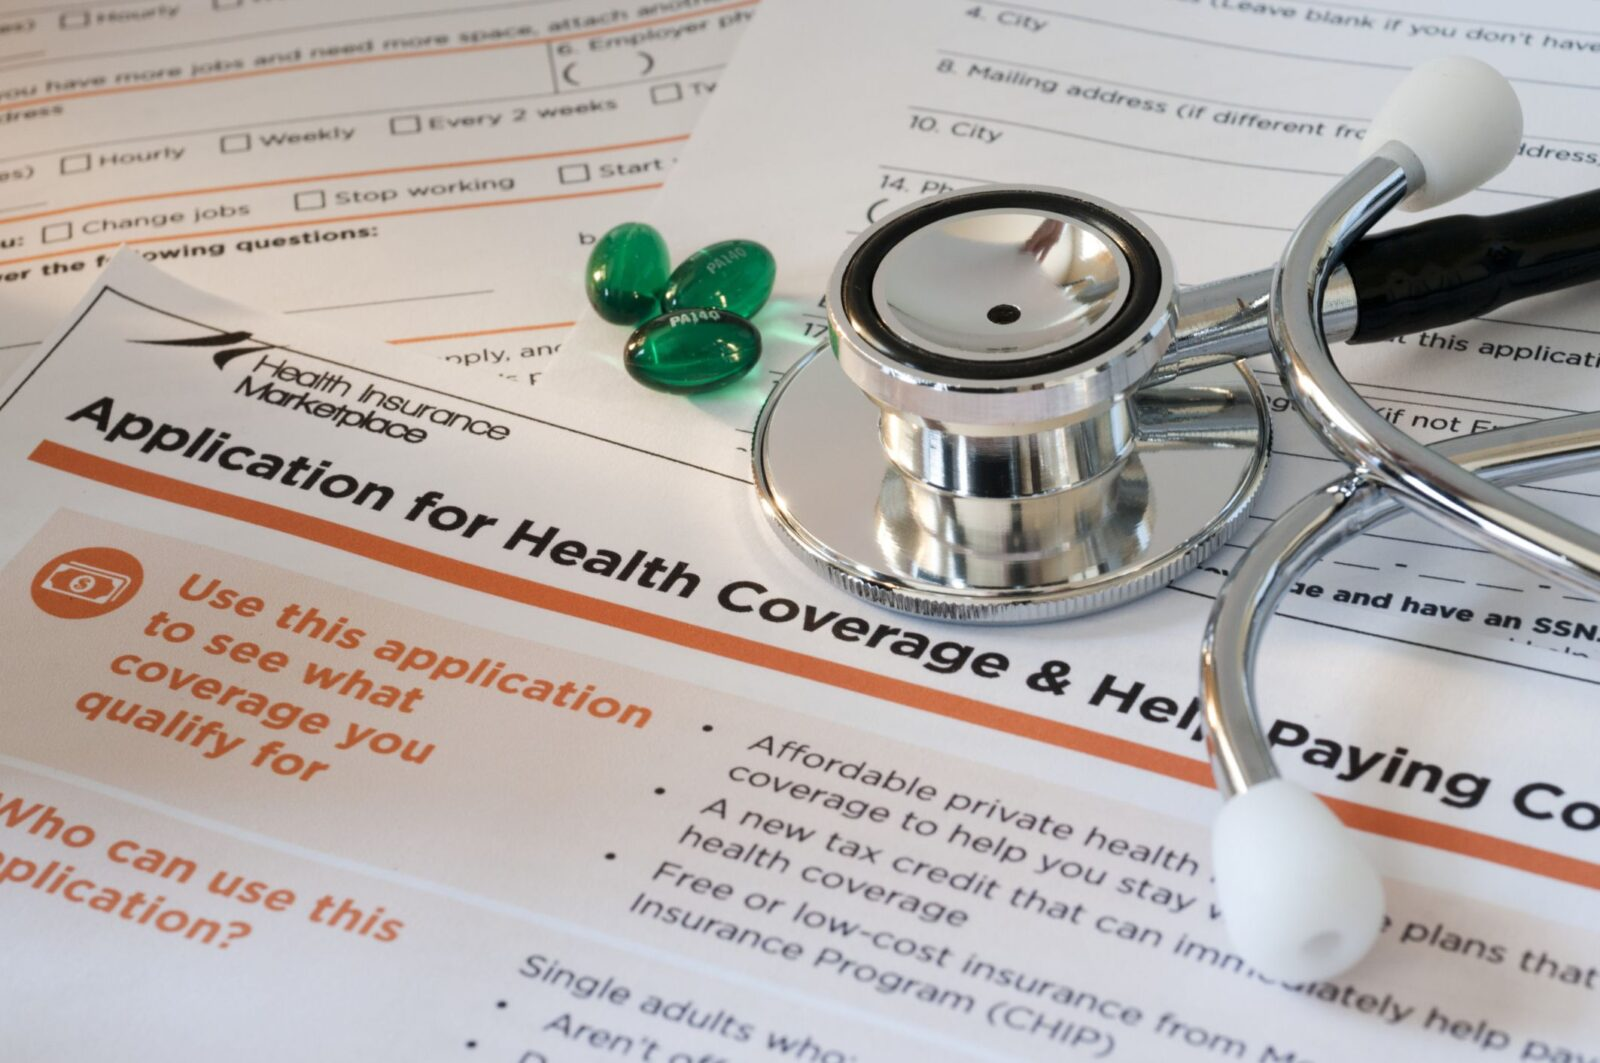 Public health insurance program for low-income